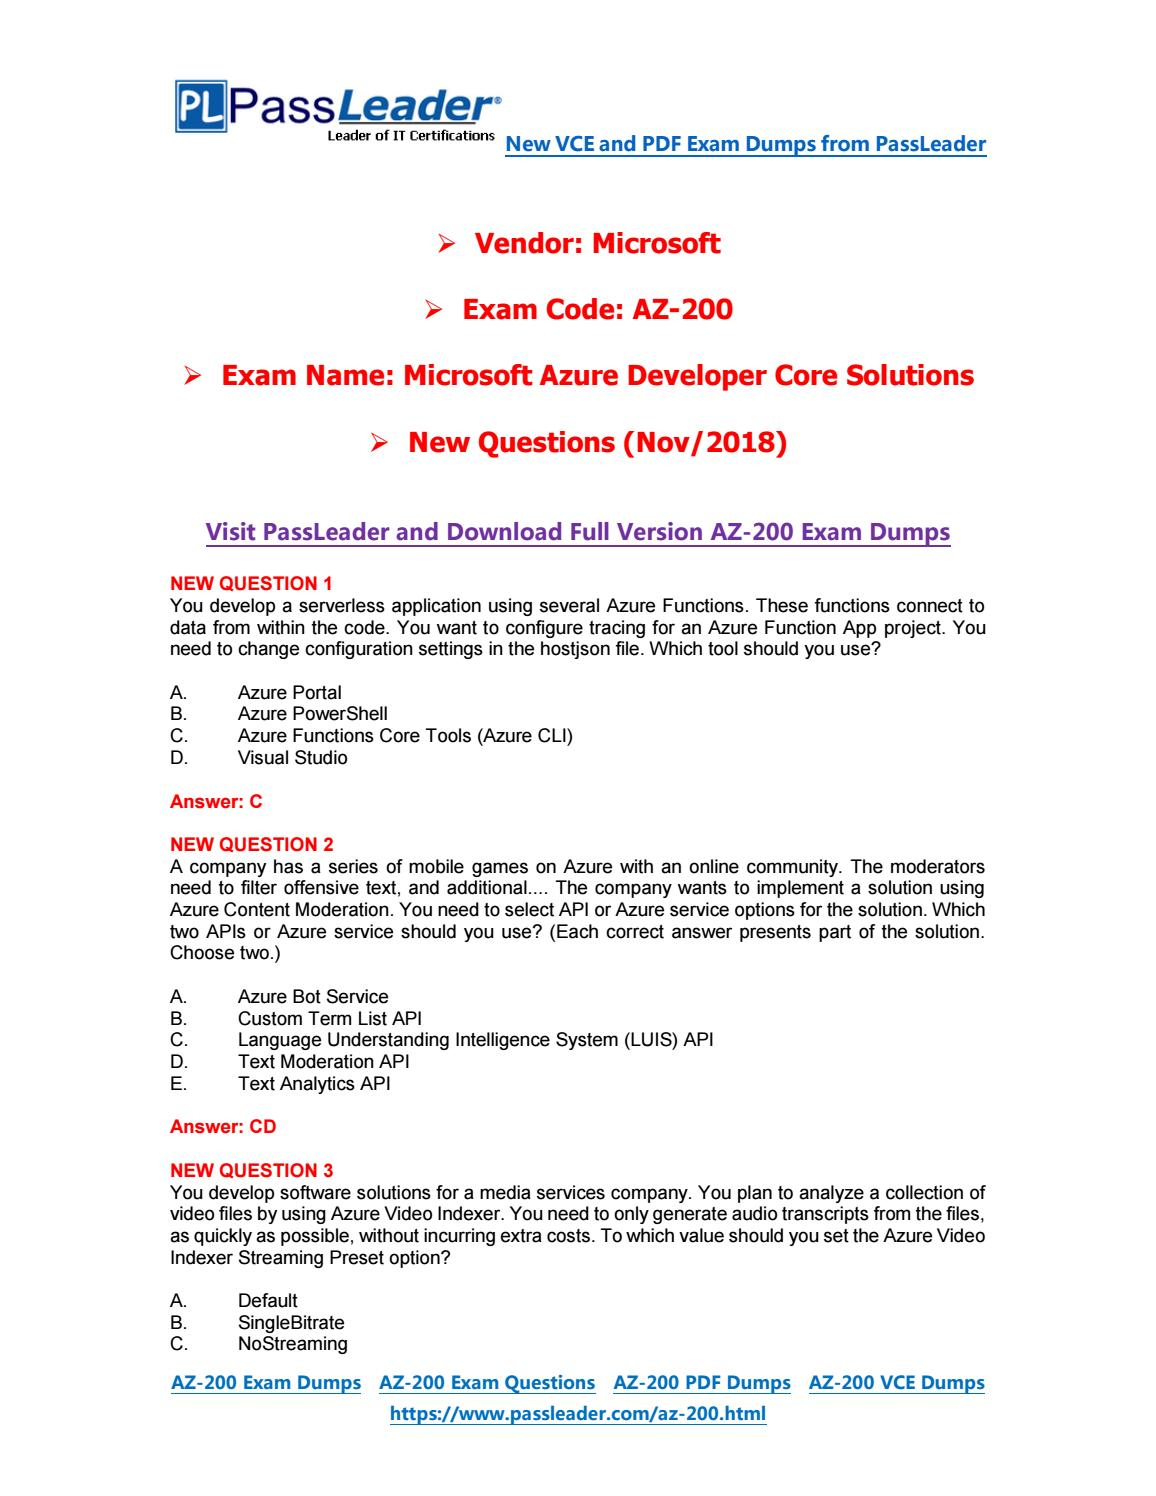 2018 New AZ-200 Dumps with PDF and VCE (Updated Question-Part A) by